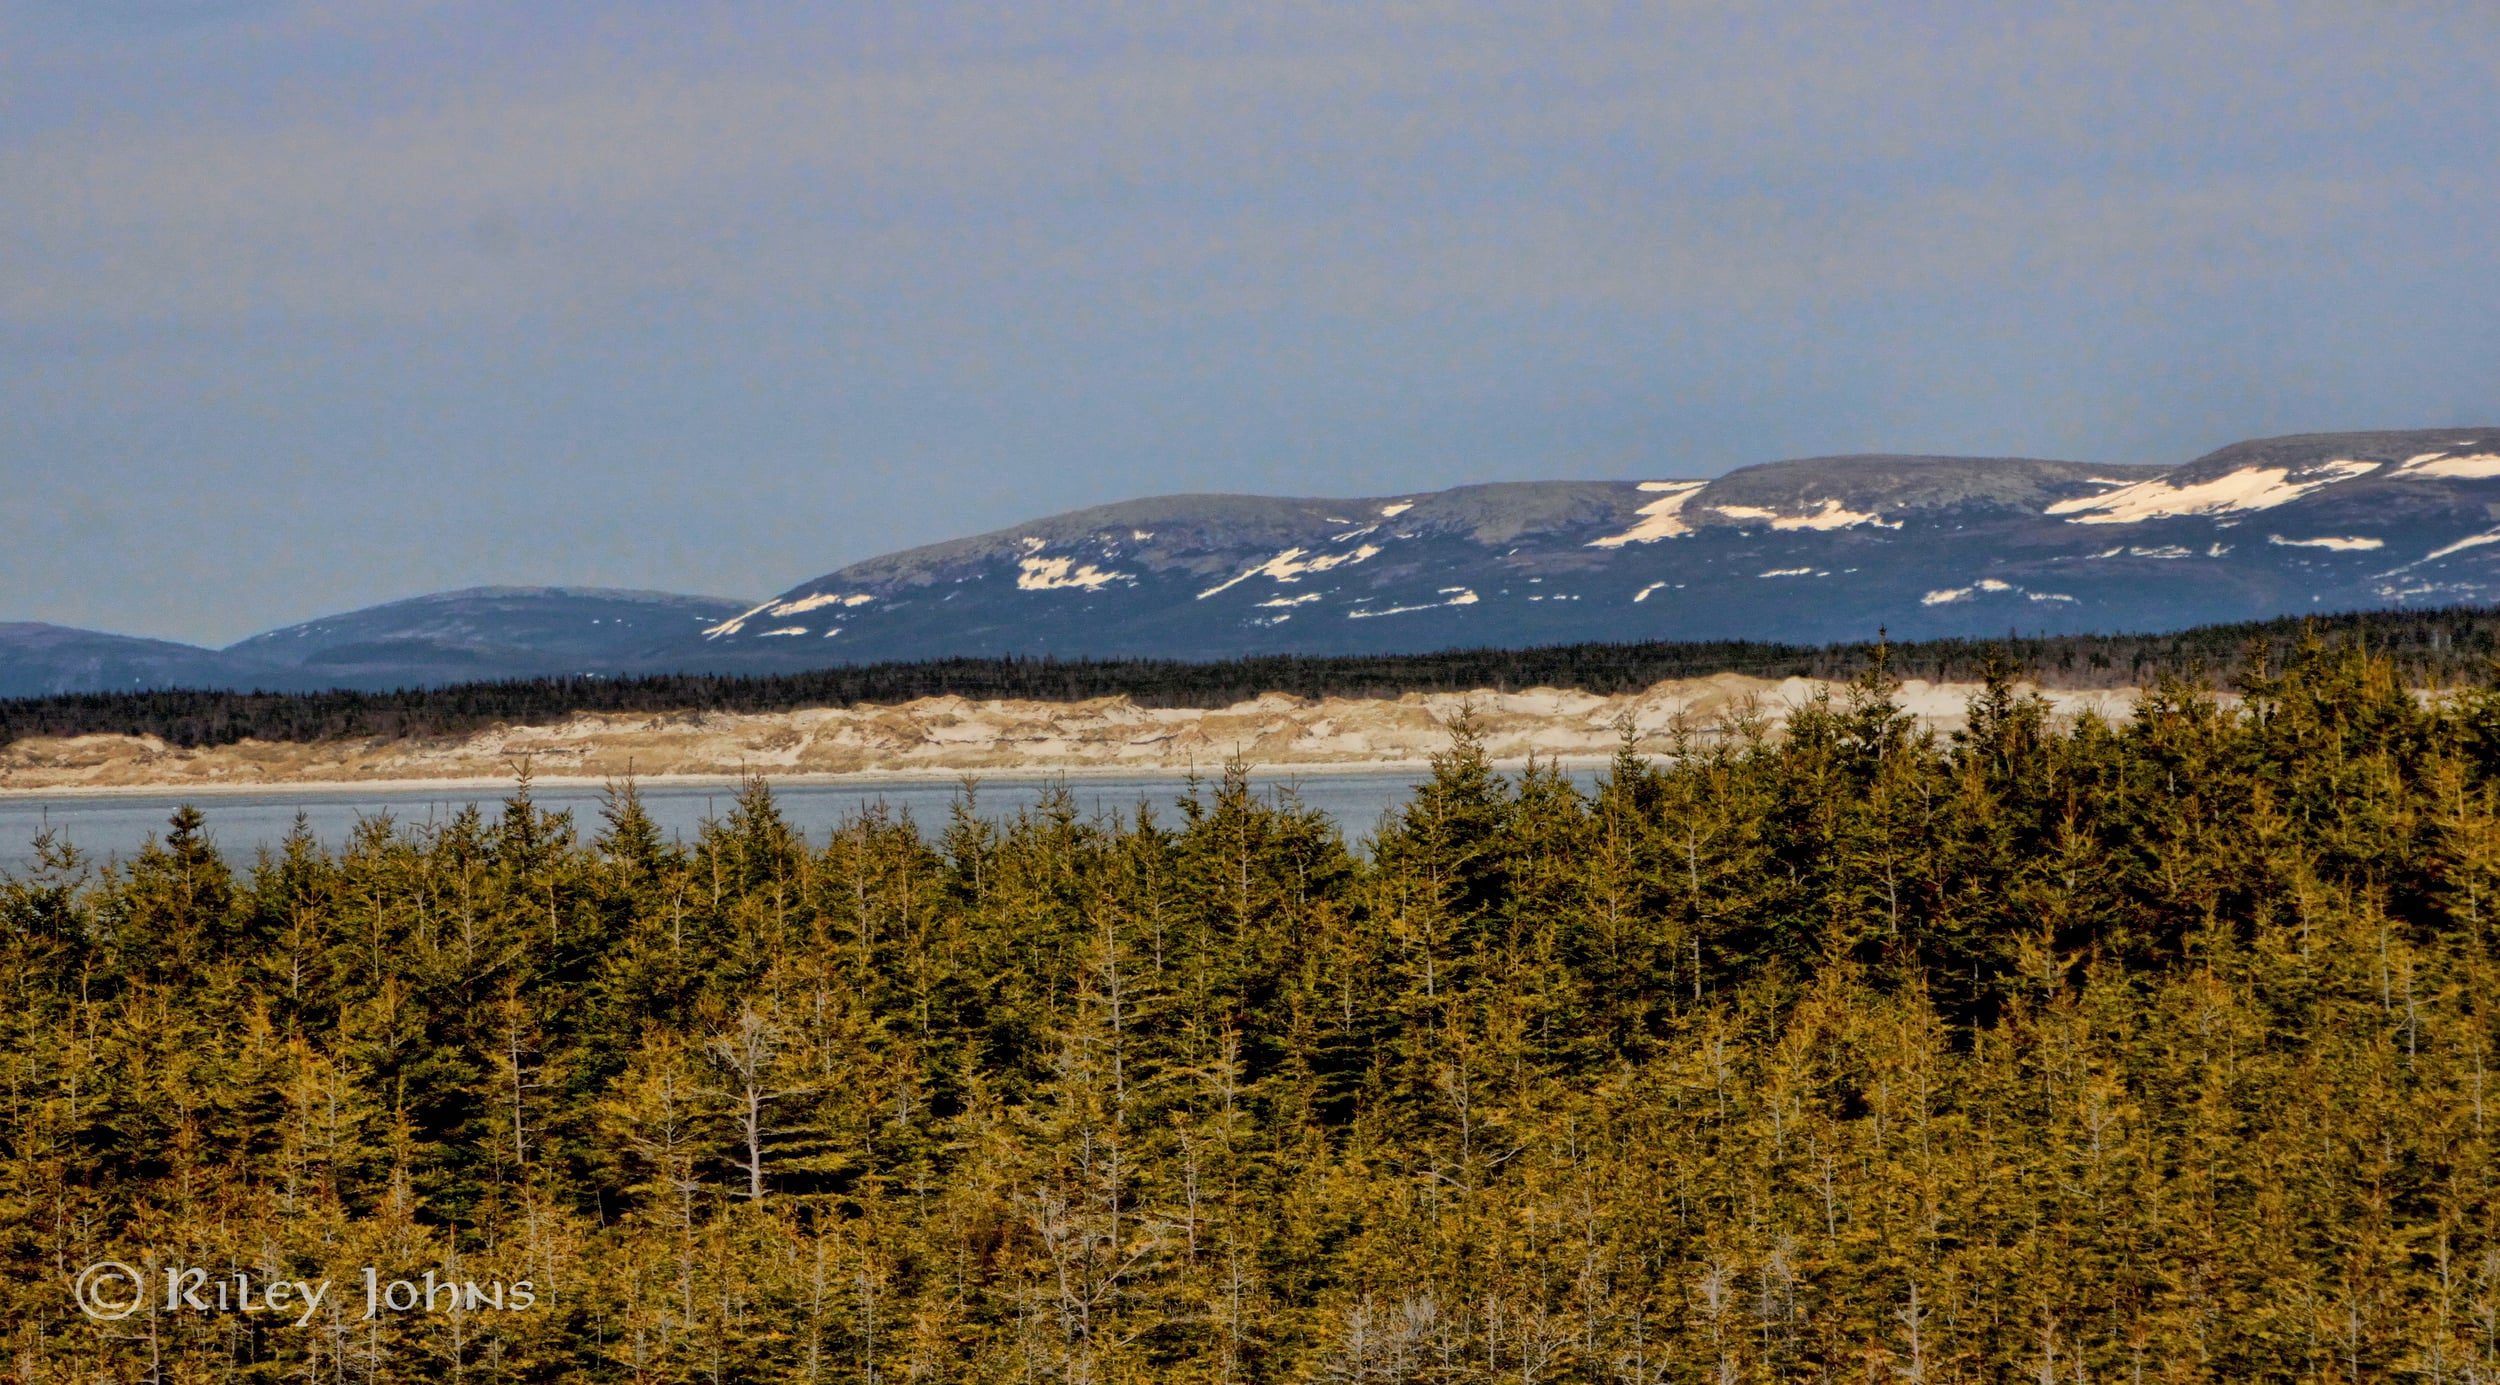 A view across to even more dunes!